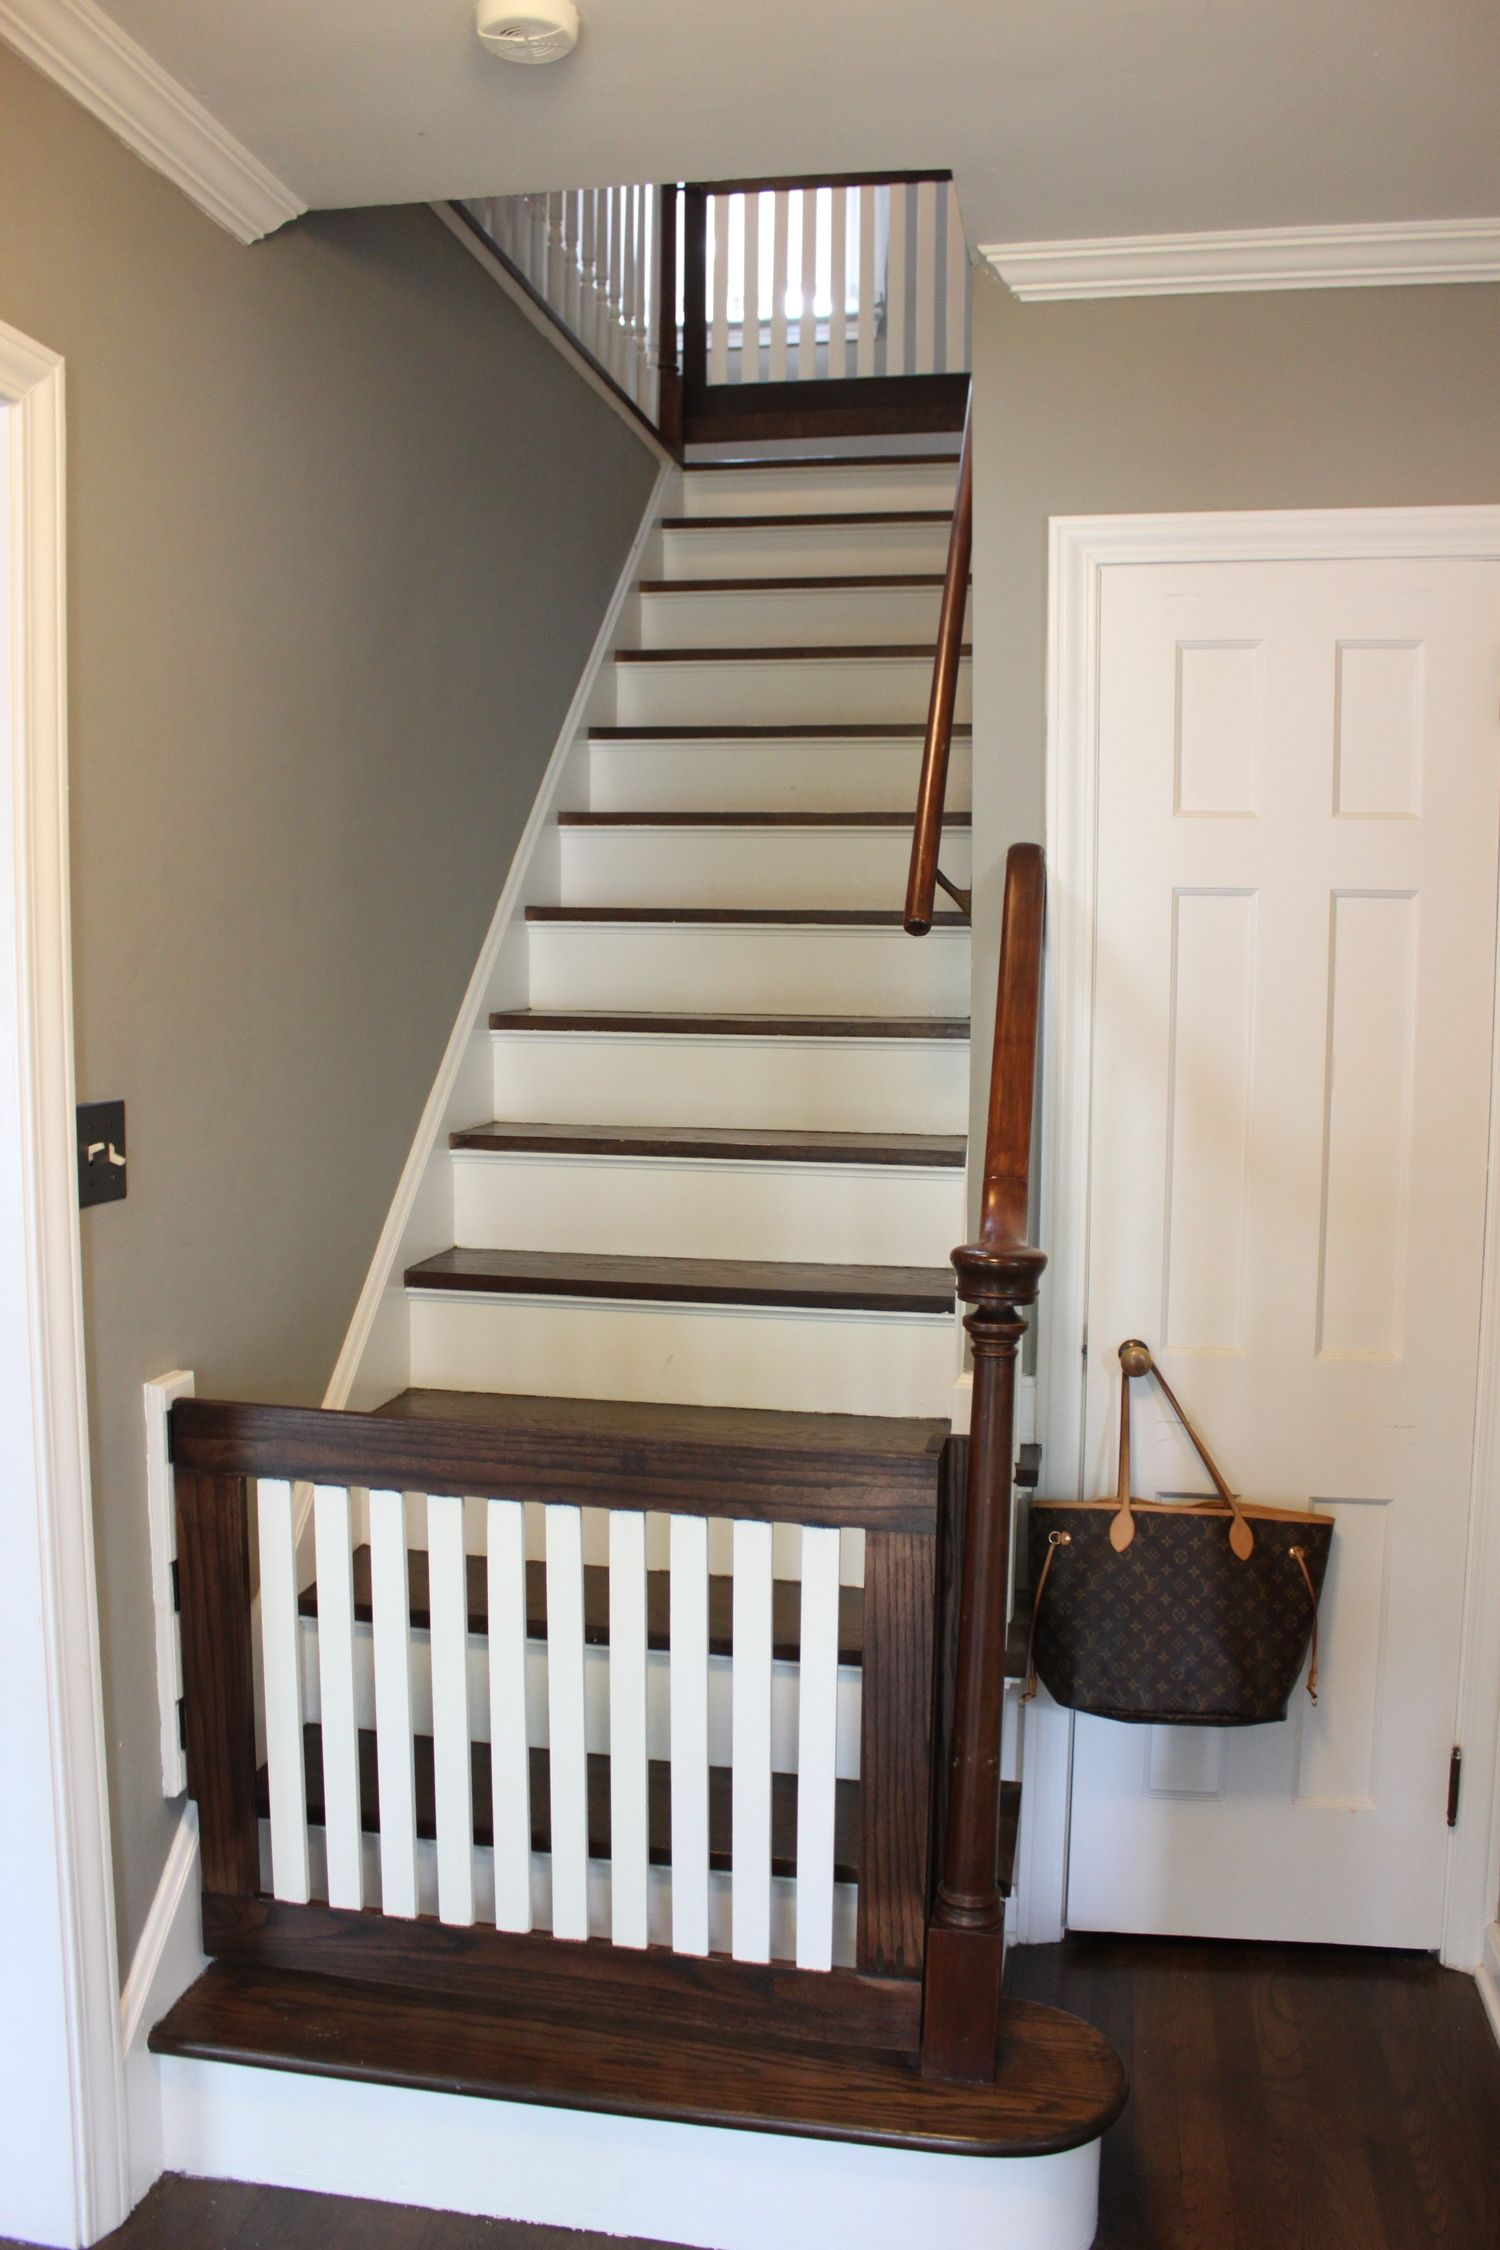 DIY Baby Gate For Little Baby gate for stairs, Diy